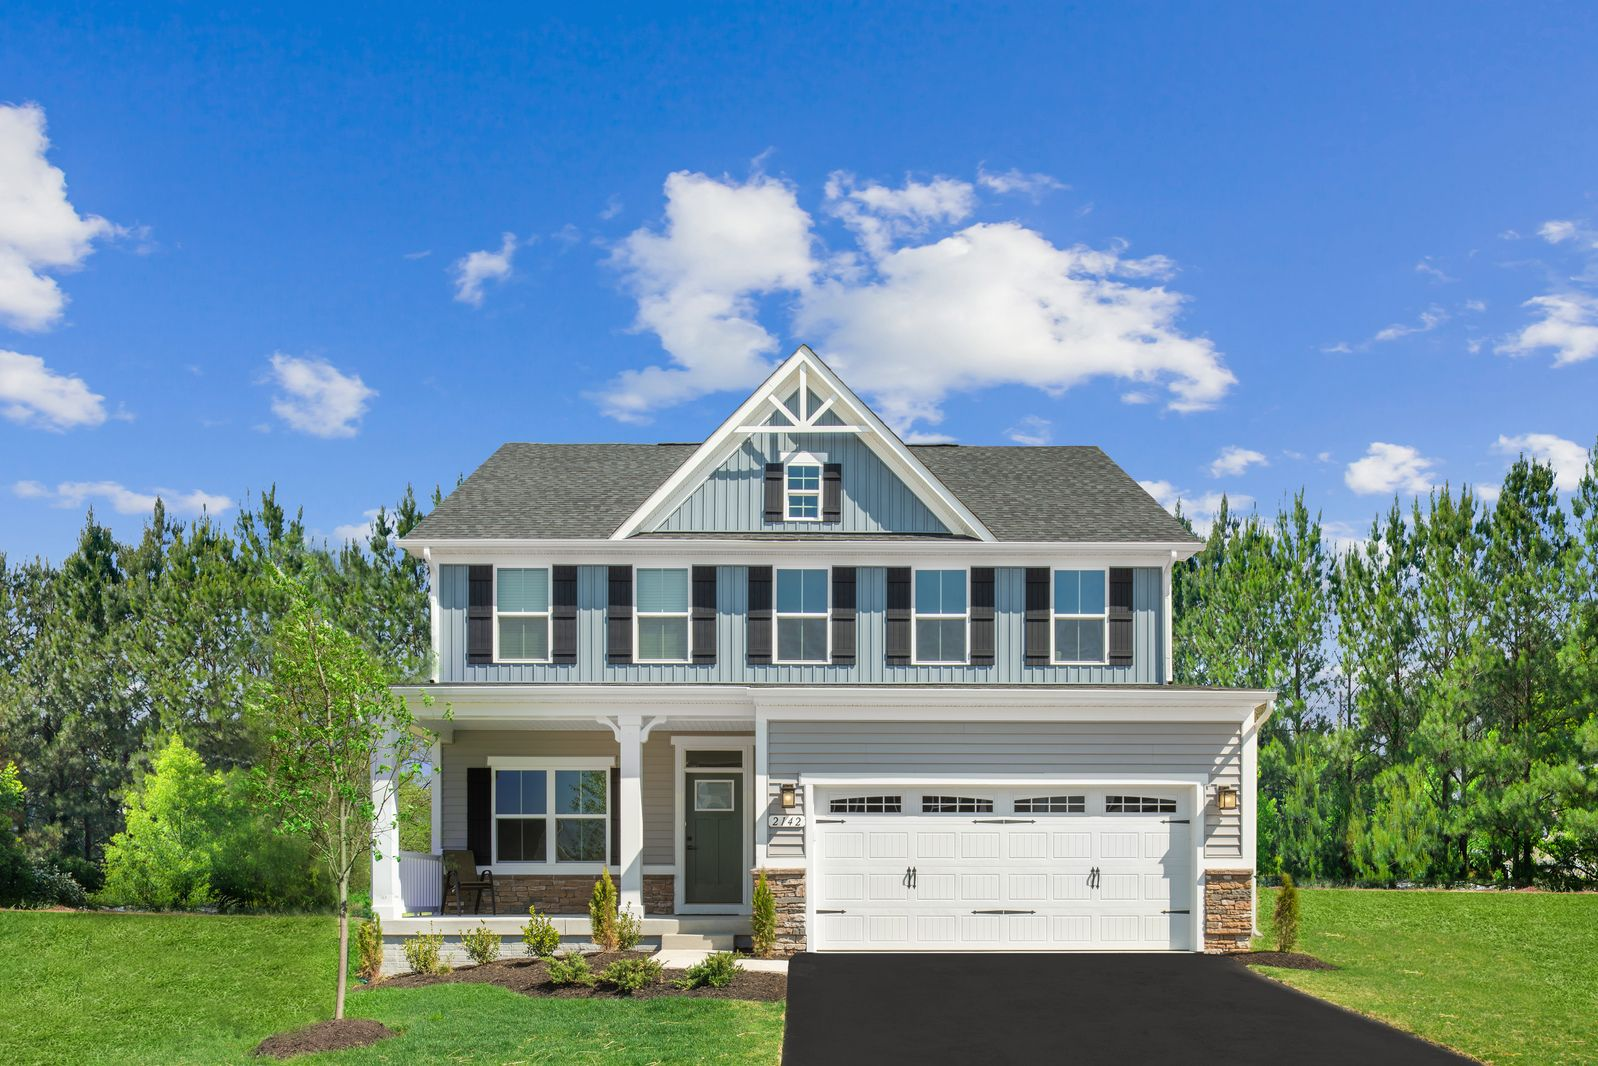 Welcome to Pine View:The only new luxury single-family homes in a premium Newark location convenient to 95 & 896, in a low-maintenance community surrounded by woods. Click here toschedule your appointment today.